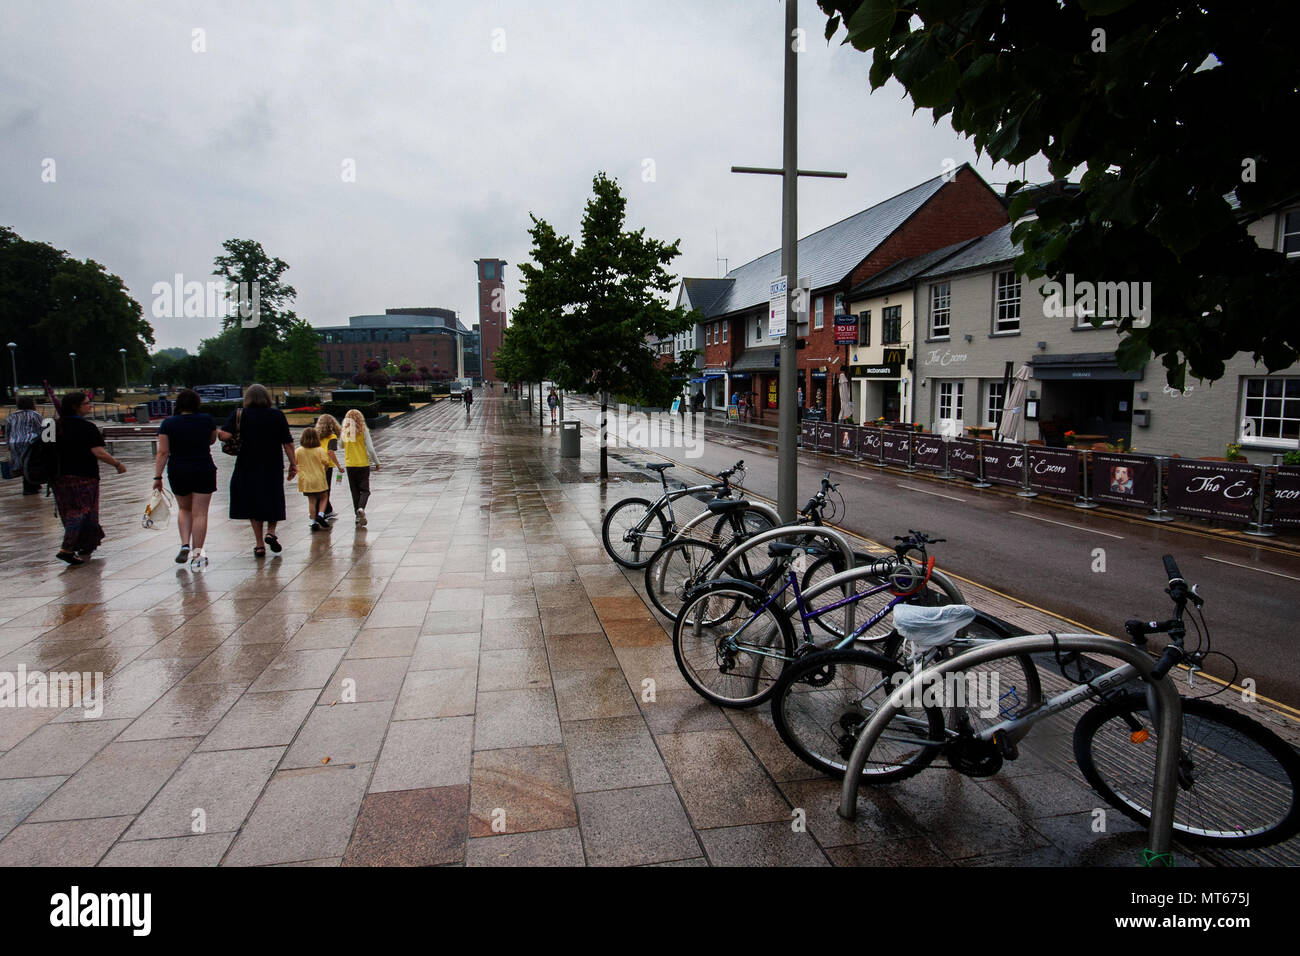 Bycicles parked on the raining streets, in Stratford upon Avon, England, UK - Stock Image